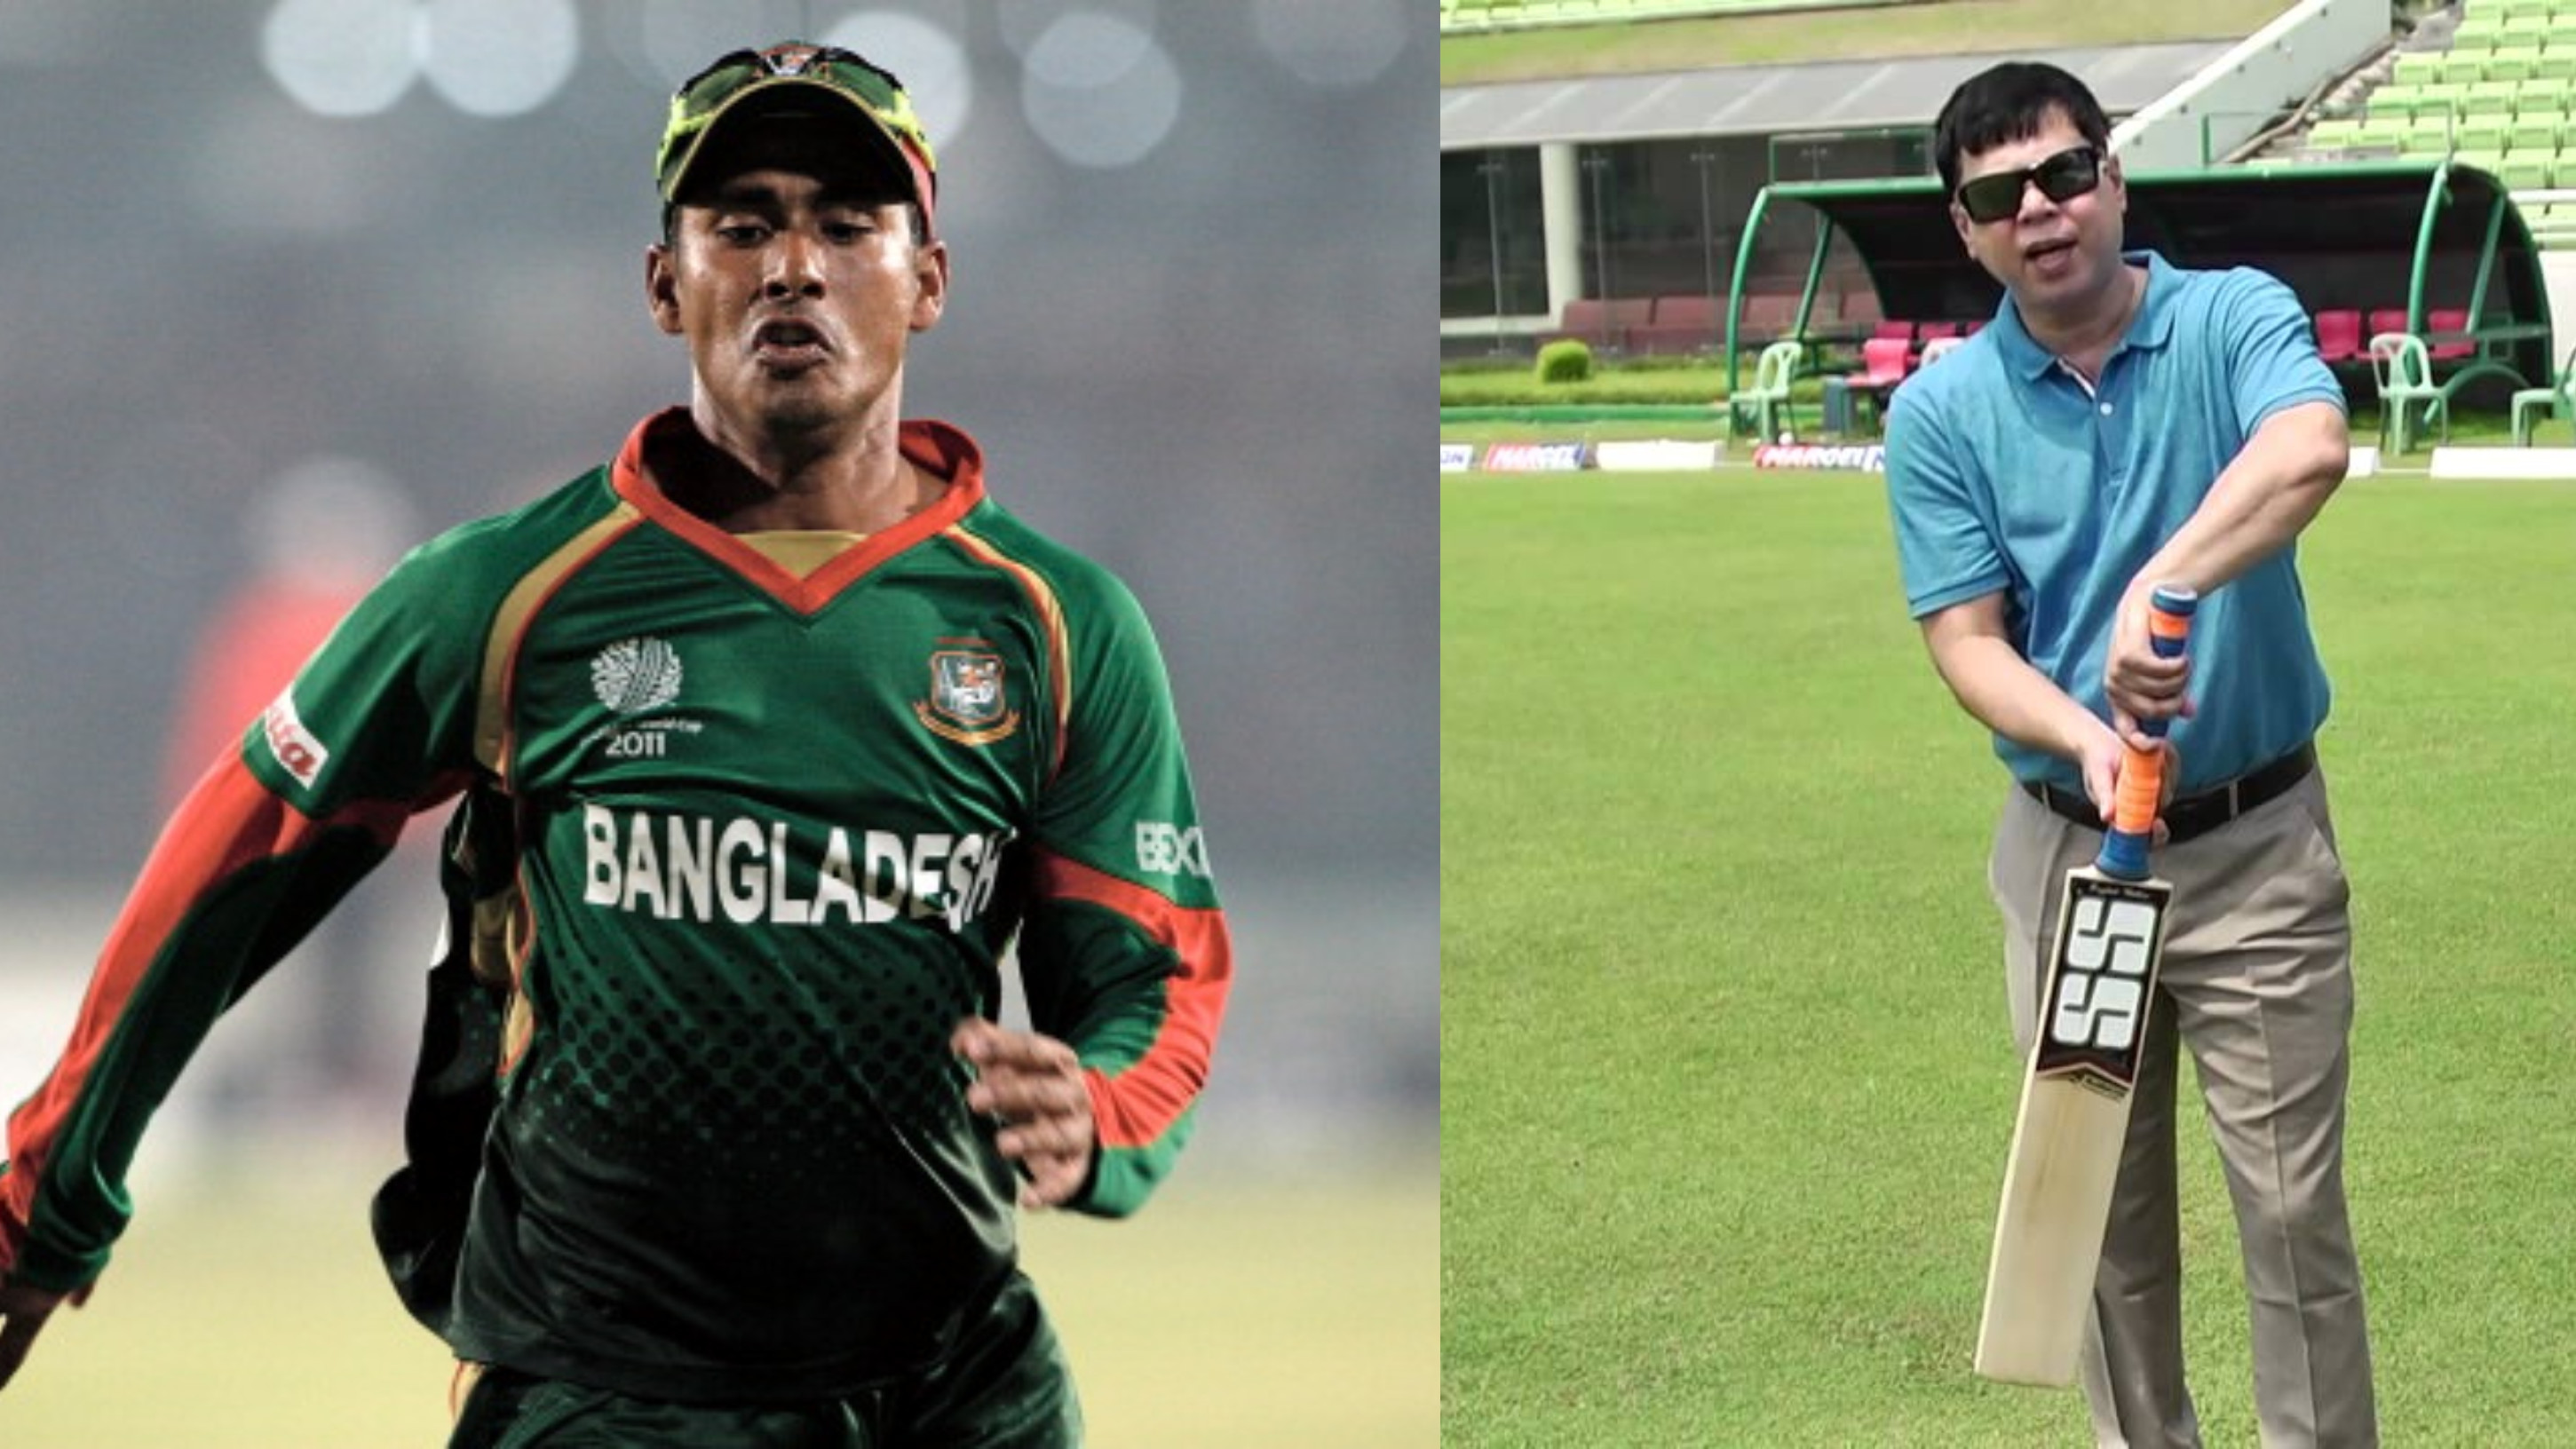 No space for Mohammad Ashraful in the Bangladesh Team at the moment, says Chief selector Minhajul Abedin